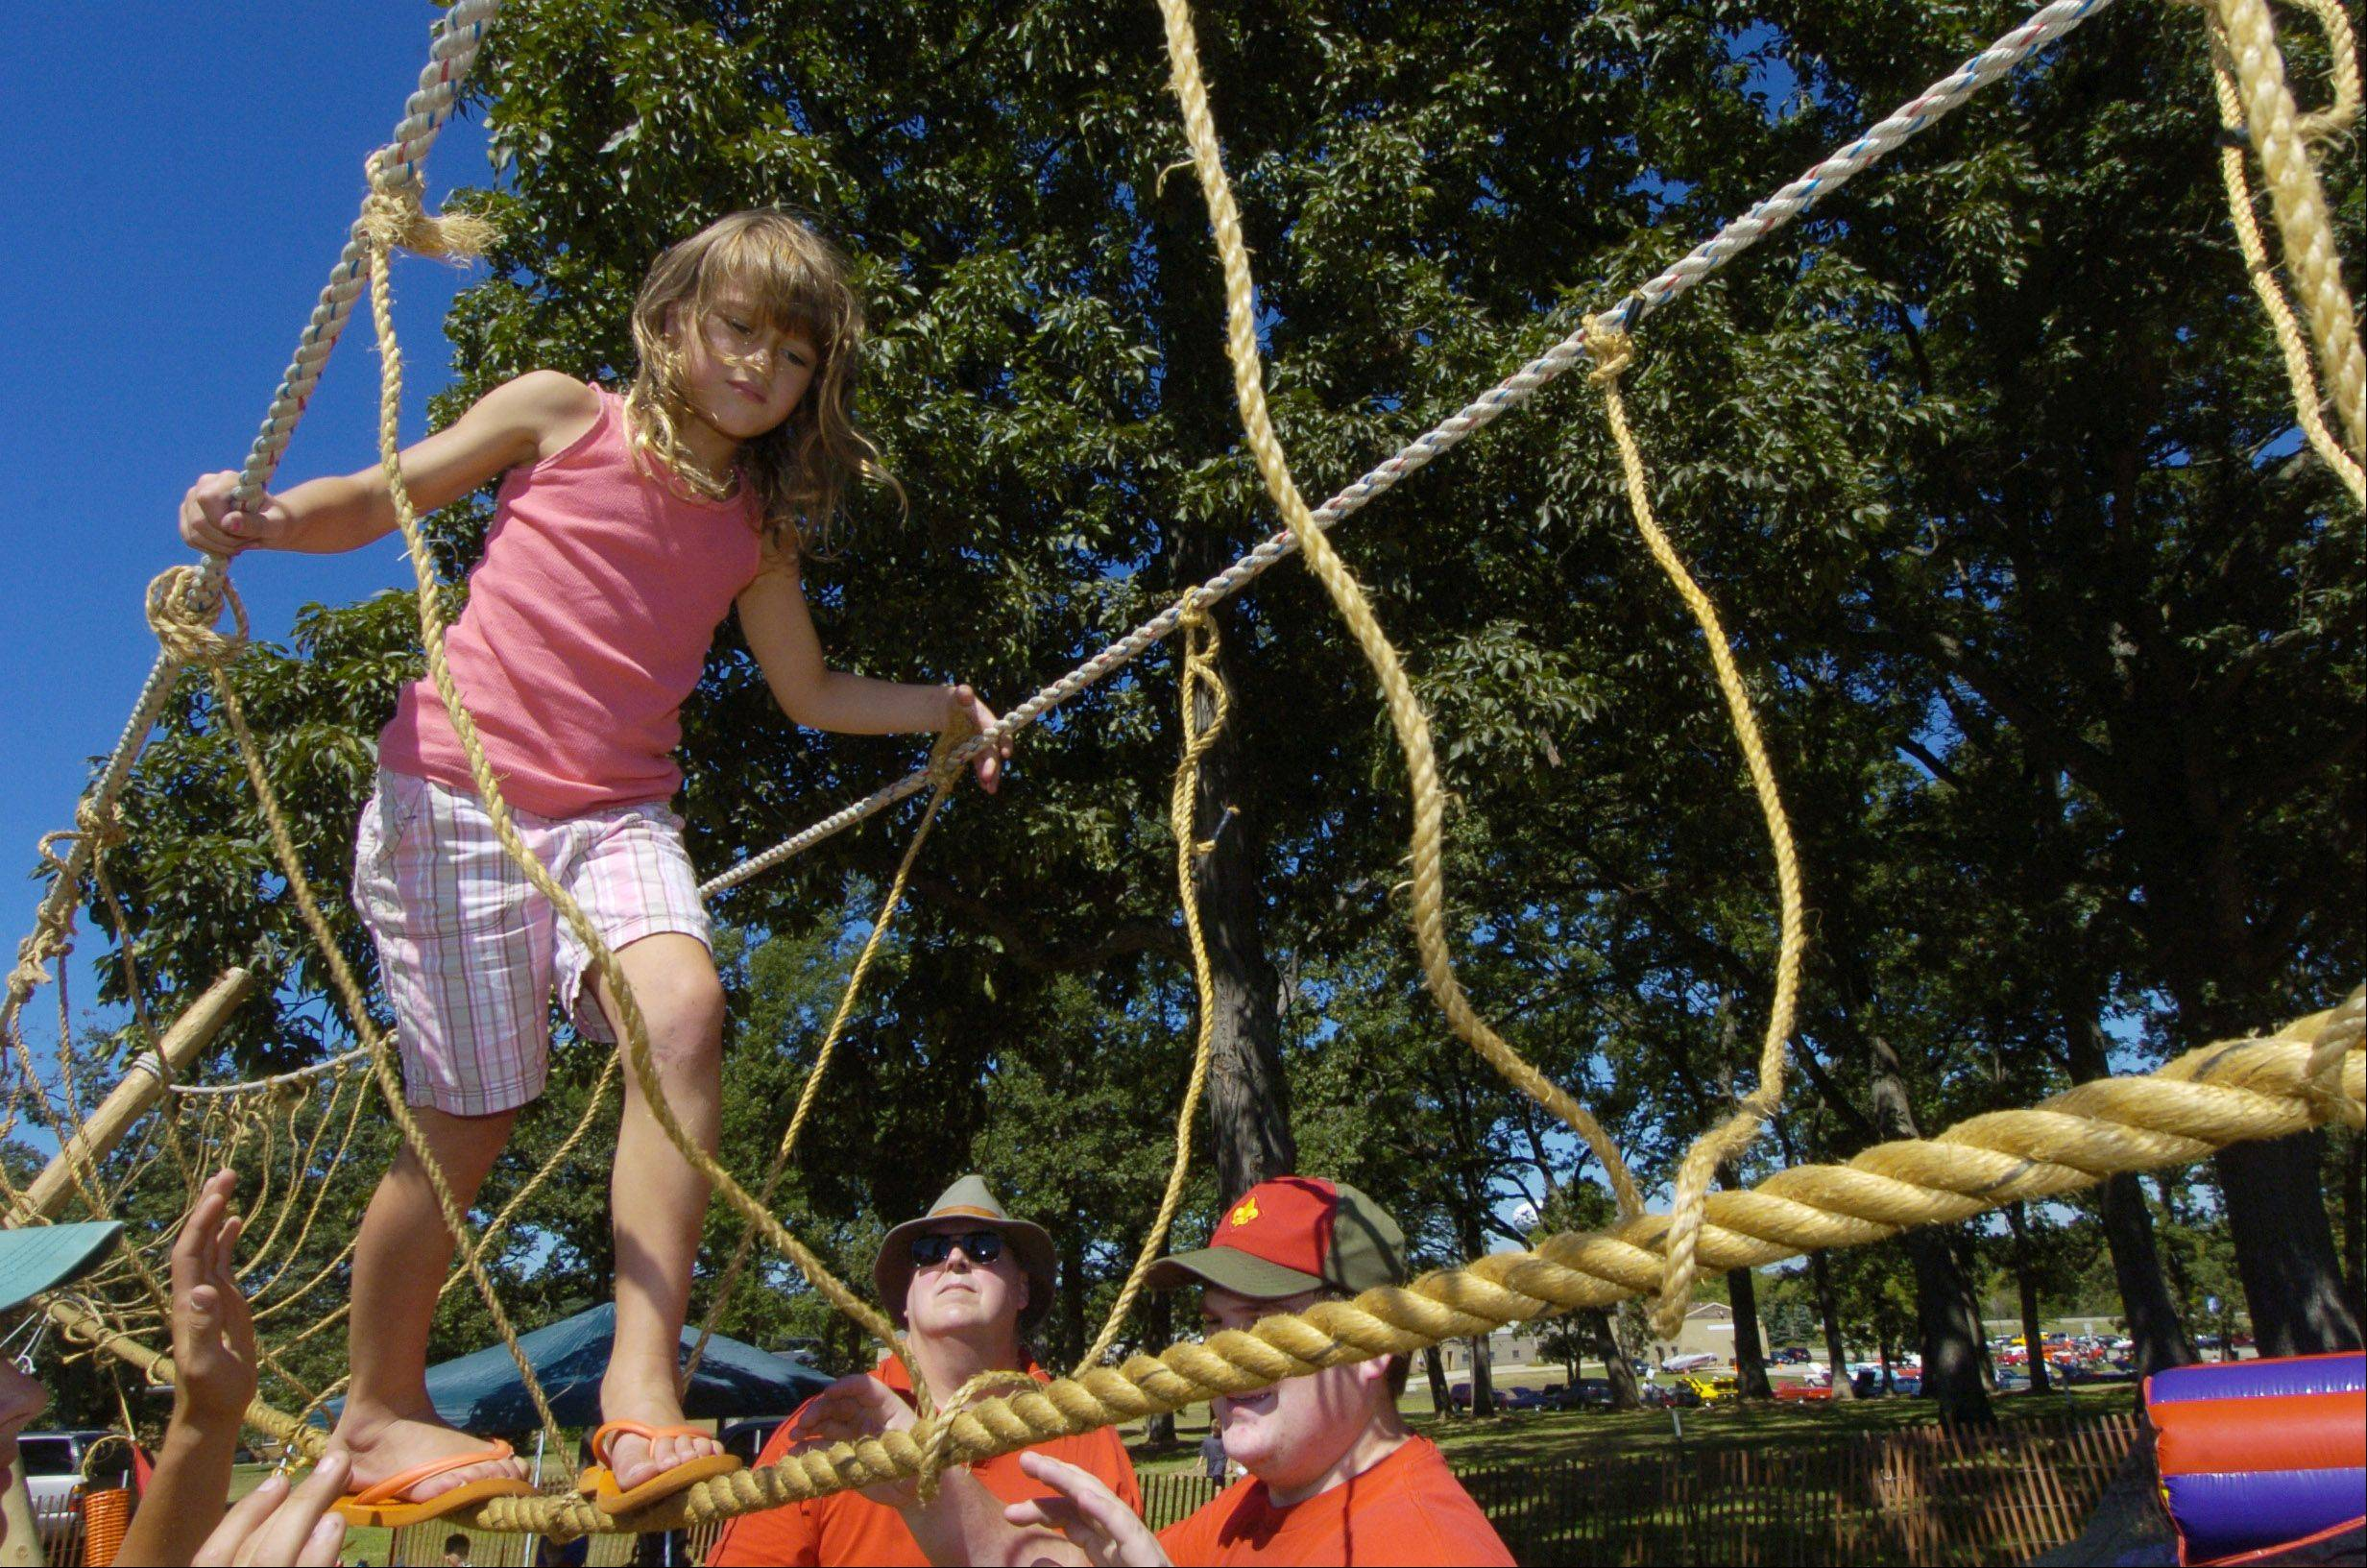 This climbing bridge will be part of the fun at Round Lake Home Town Fest from 11 a.m. to 9 p.m. Saturday, Aug. 27. This Round Lake girl had a blast on the bridge last year.